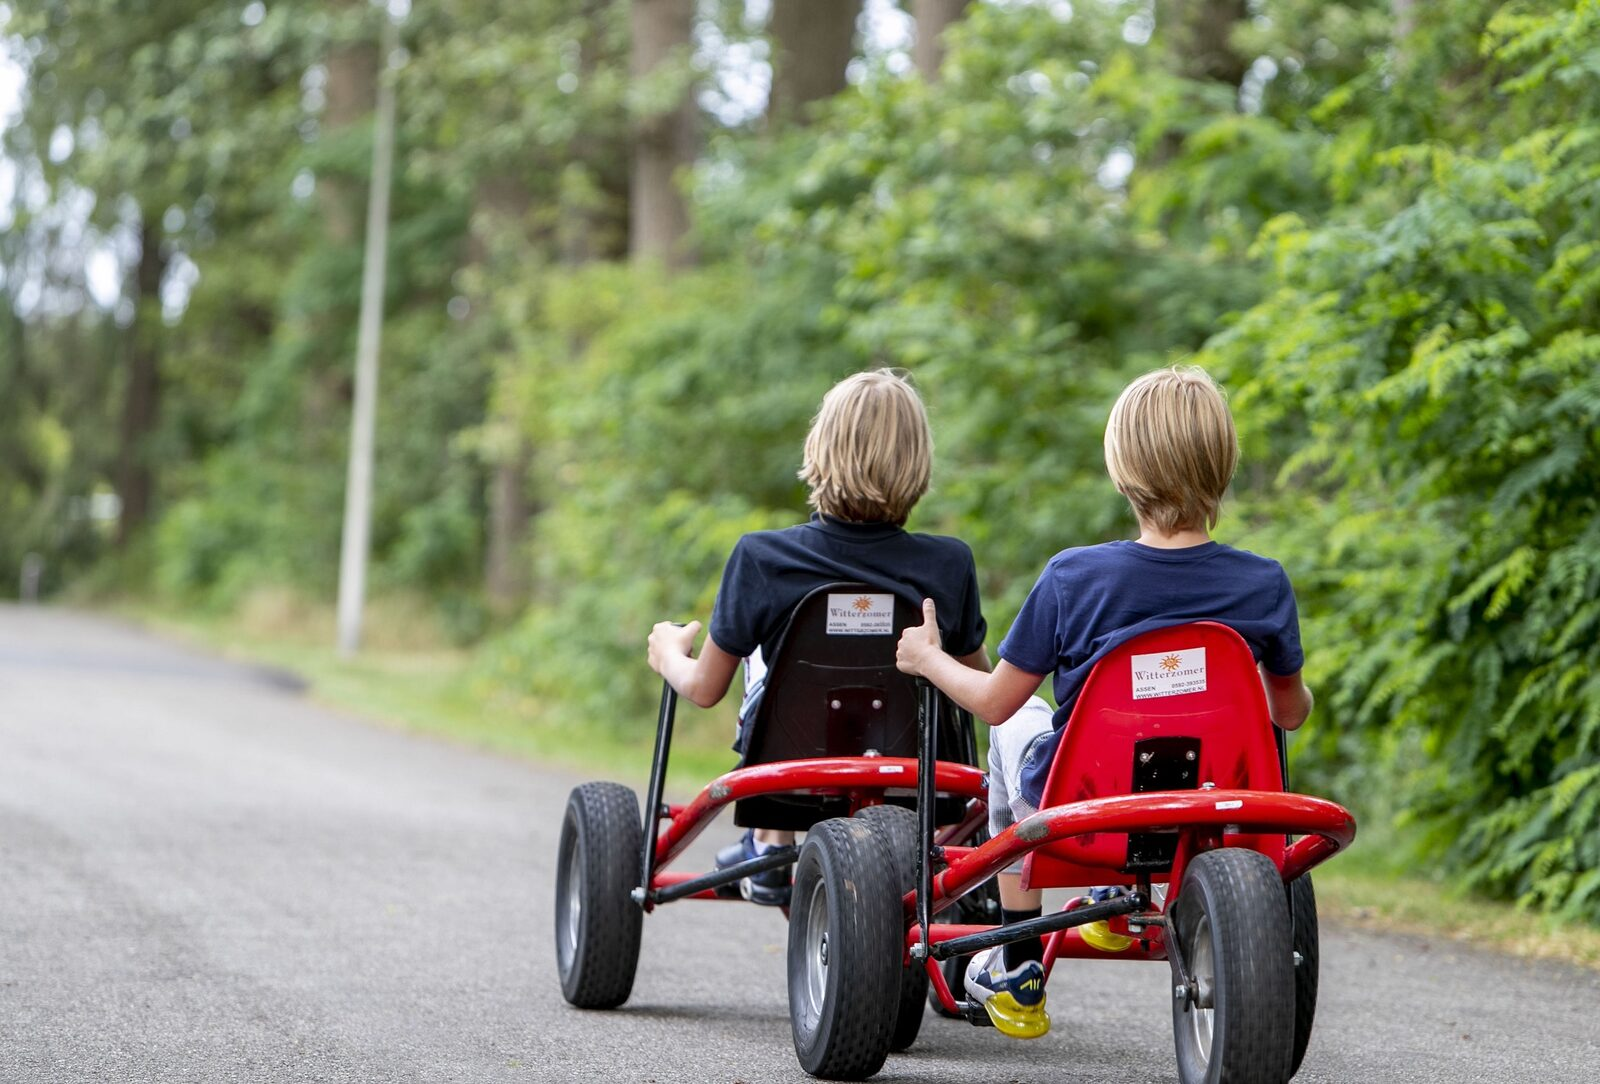 Bicycle and kart rental services